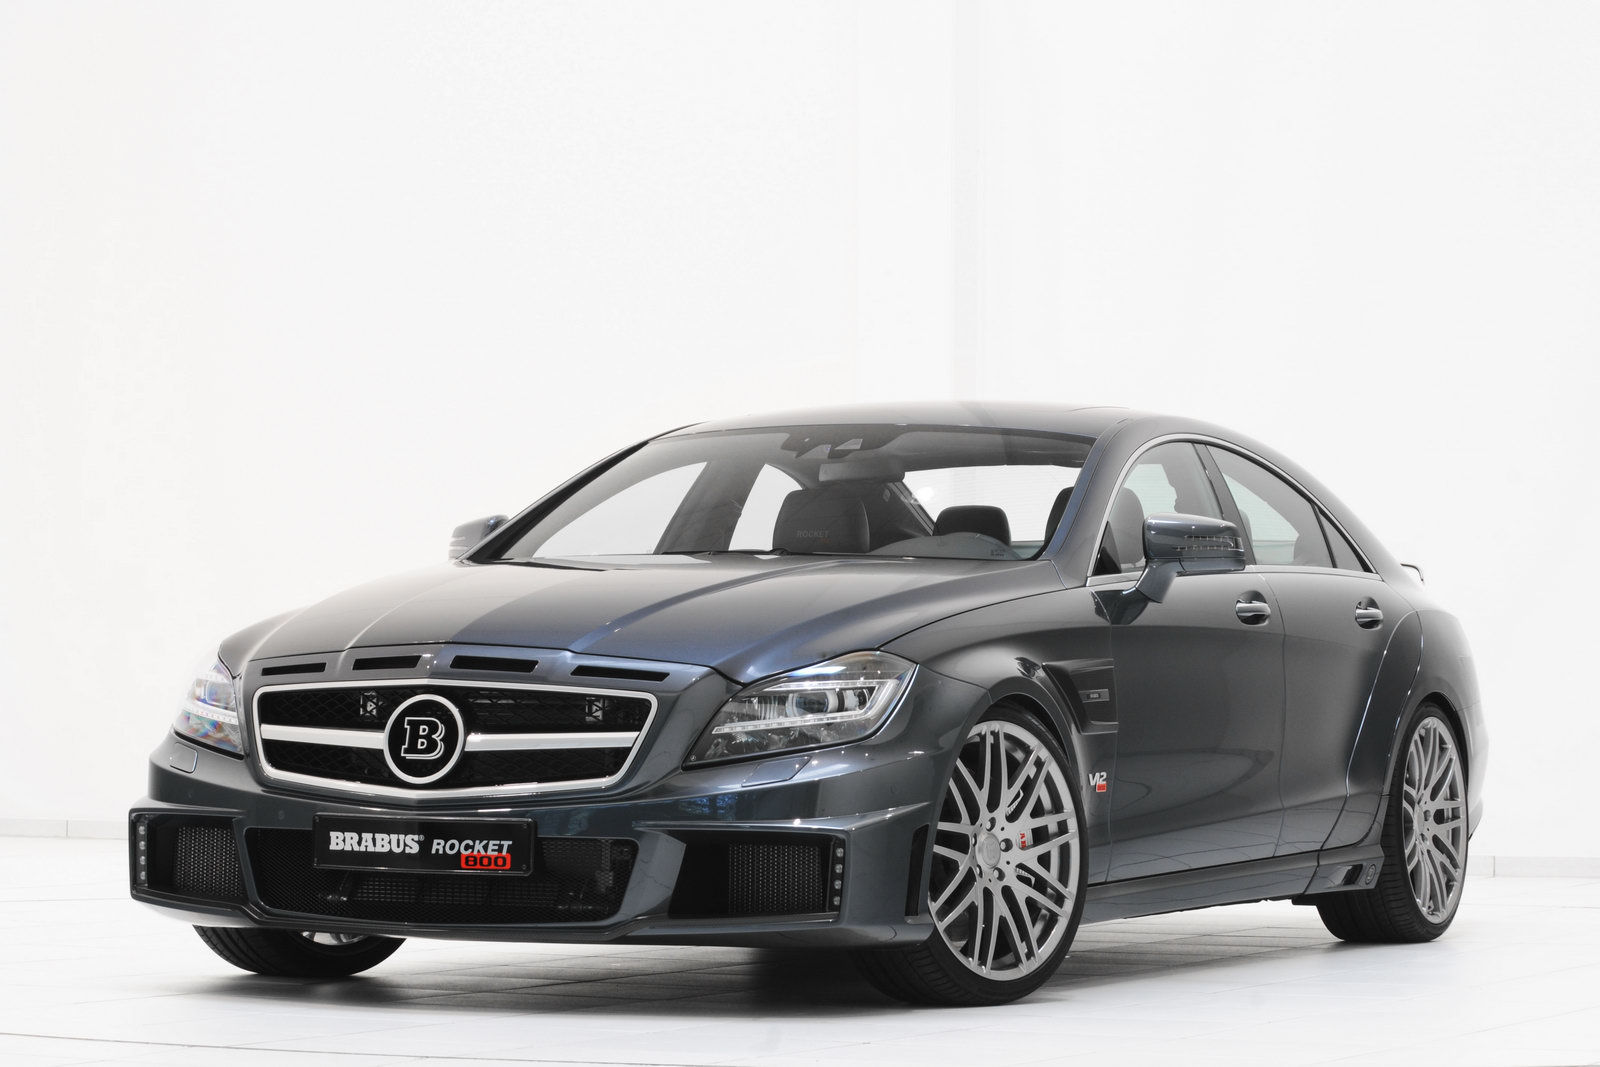 Brabus rocket photo - 8